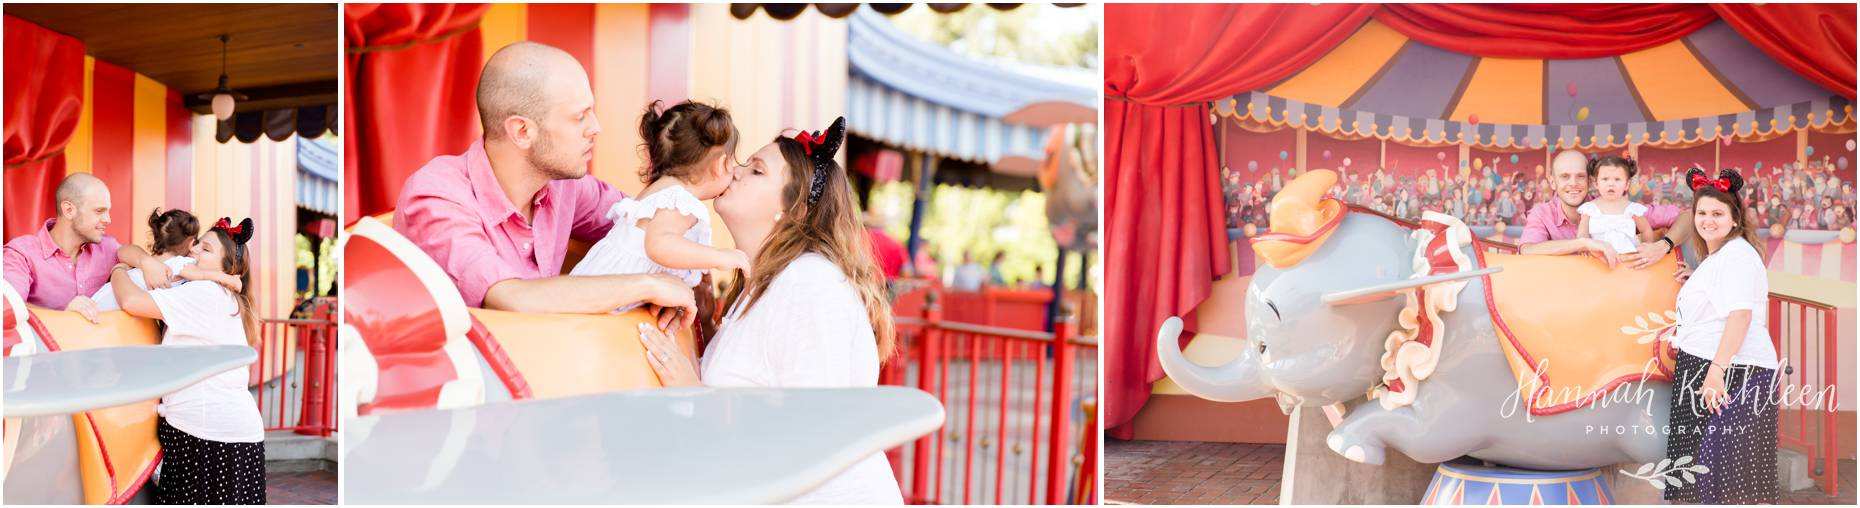 Abbott_Magic_Kingdom_Disney_World_Family_Photographer_Session